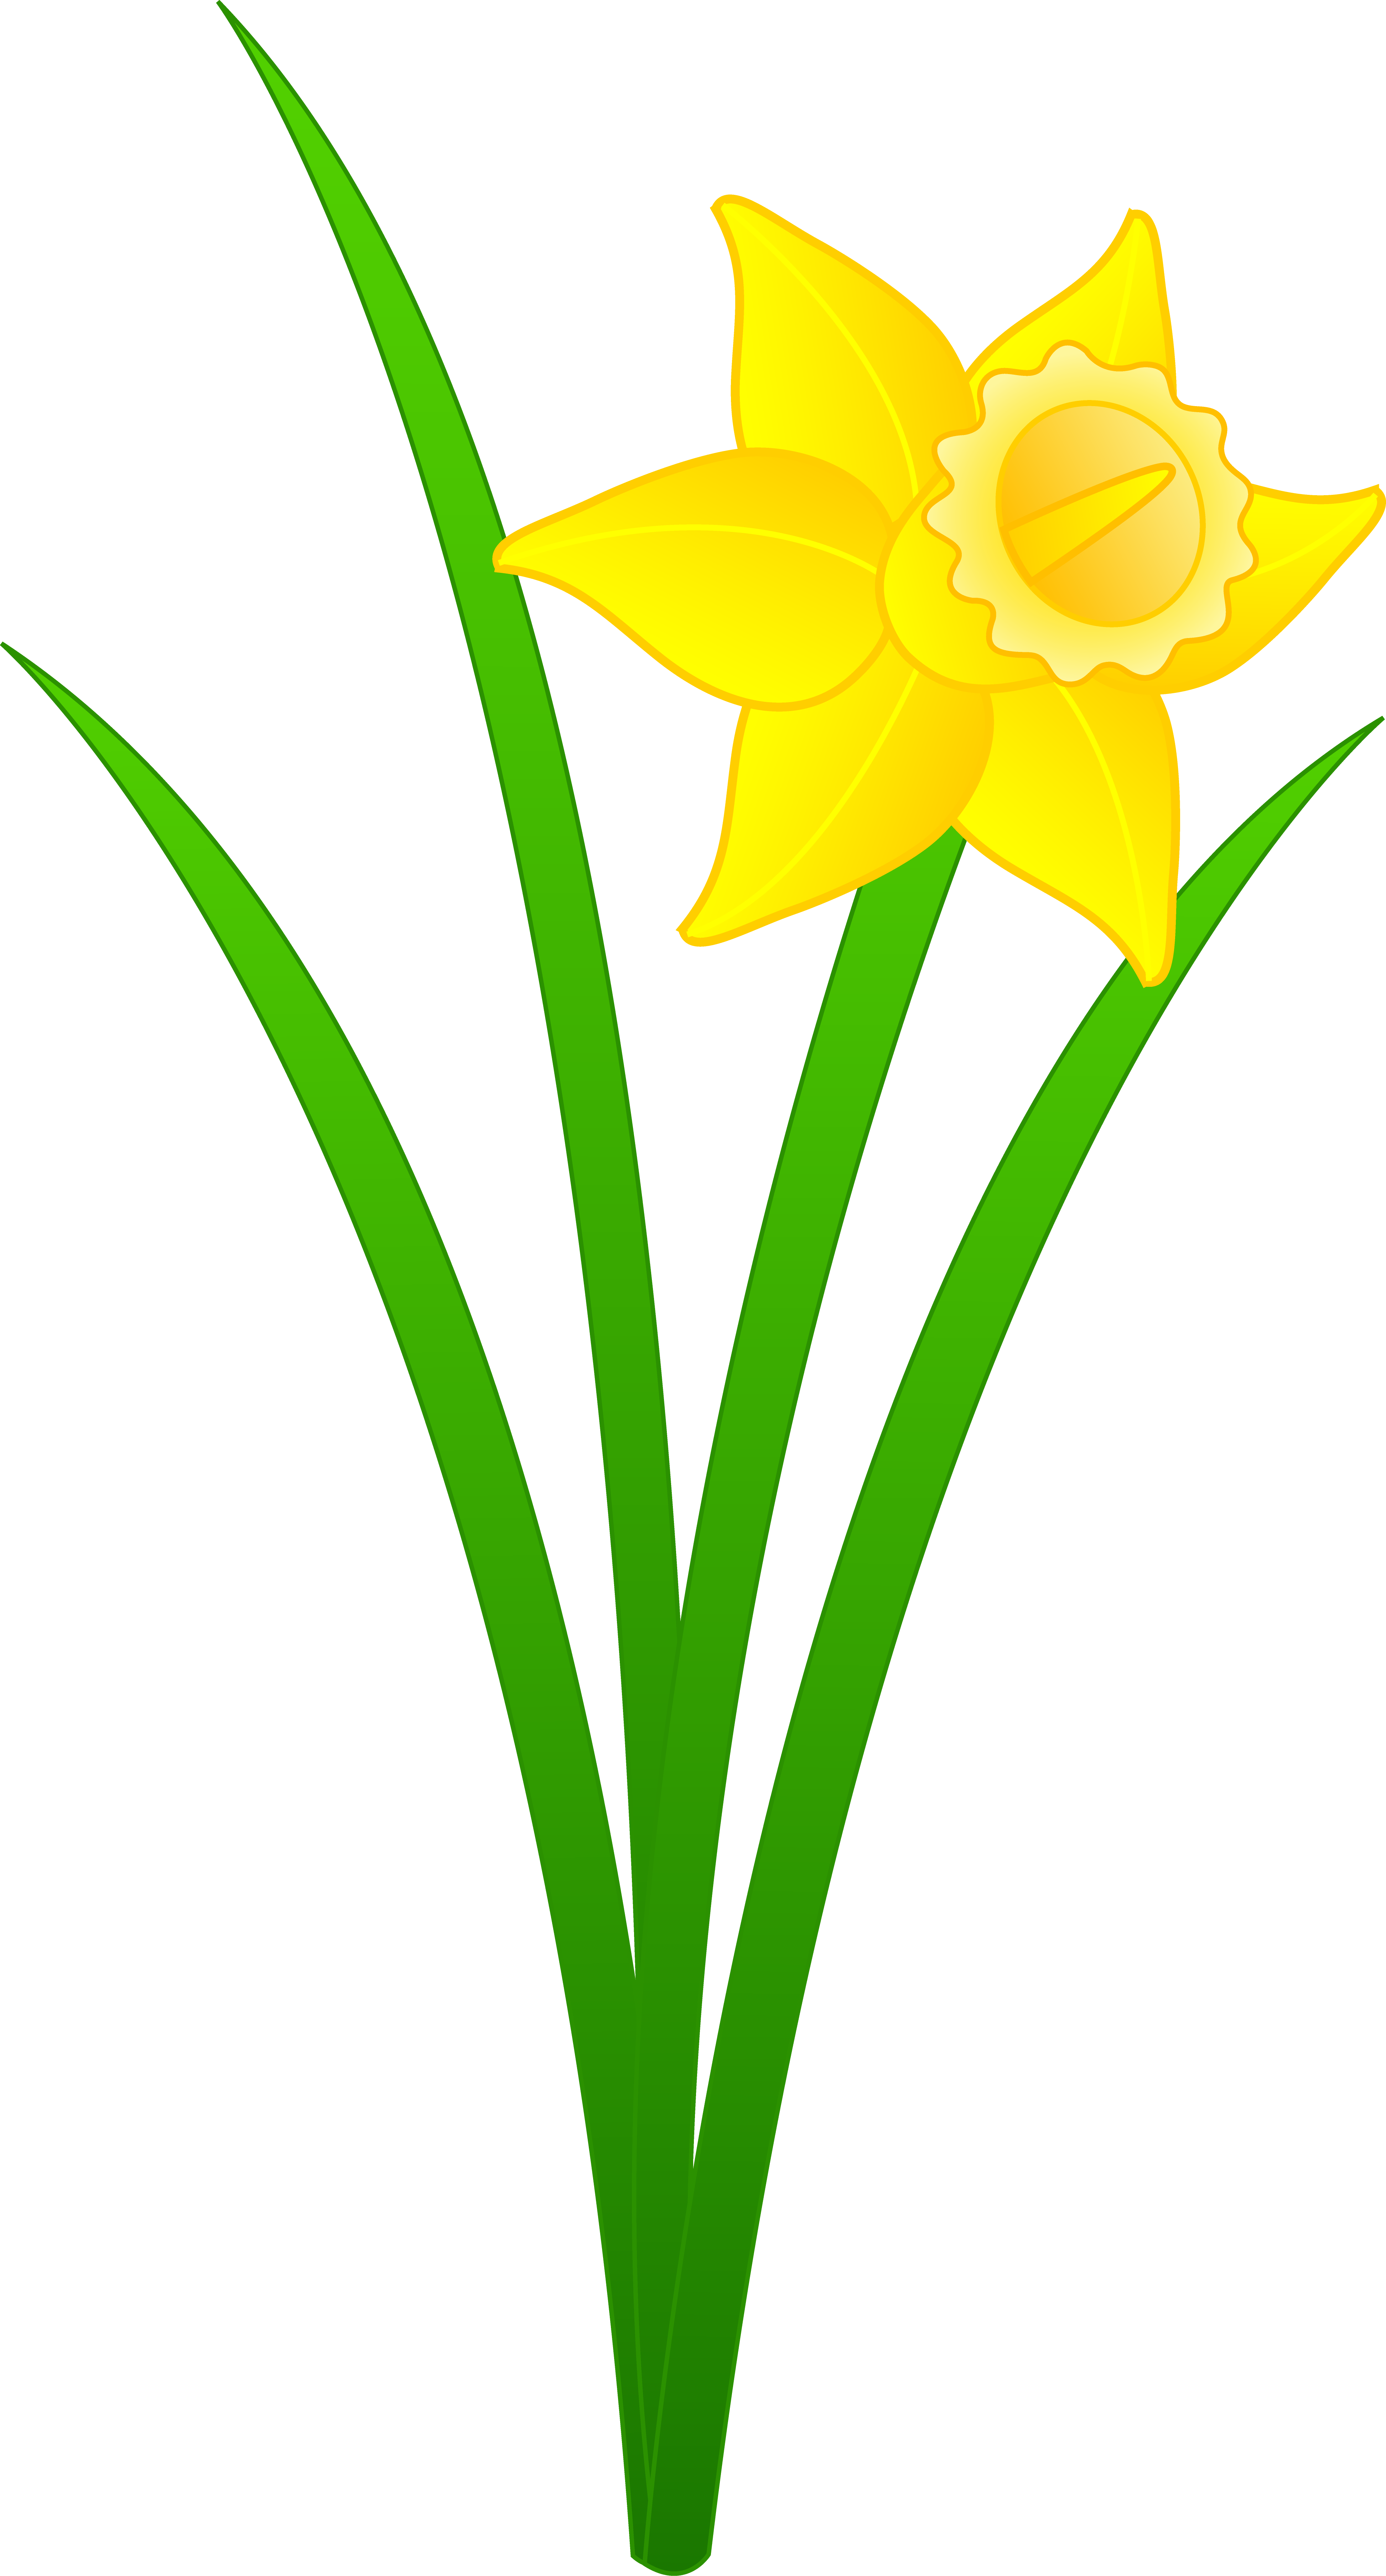 Daffodil clipart #5, Download drawings